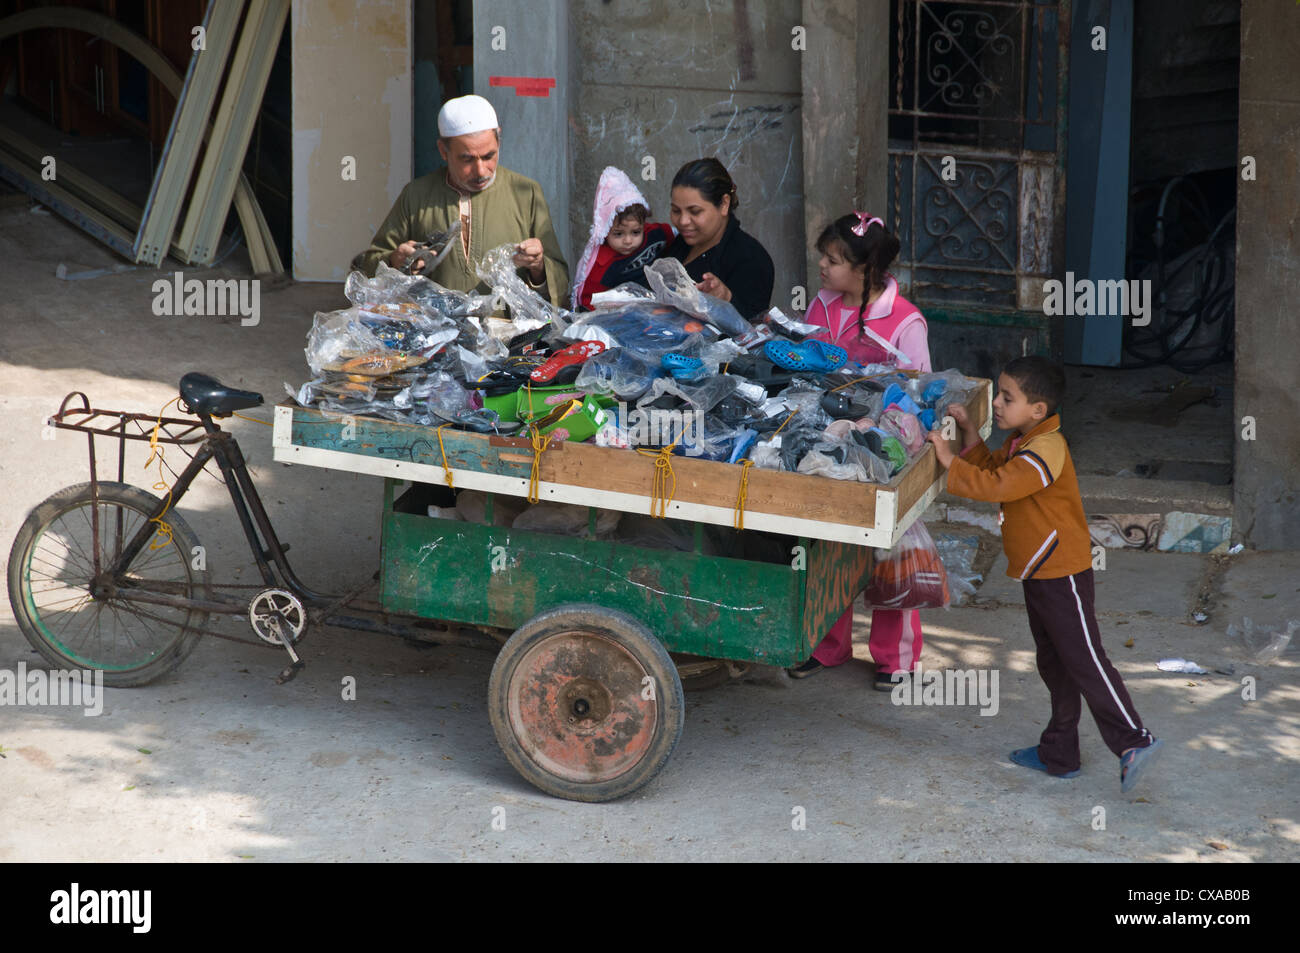 People buying from a merchant working class area Giza Cairo Egypt - Stock Image